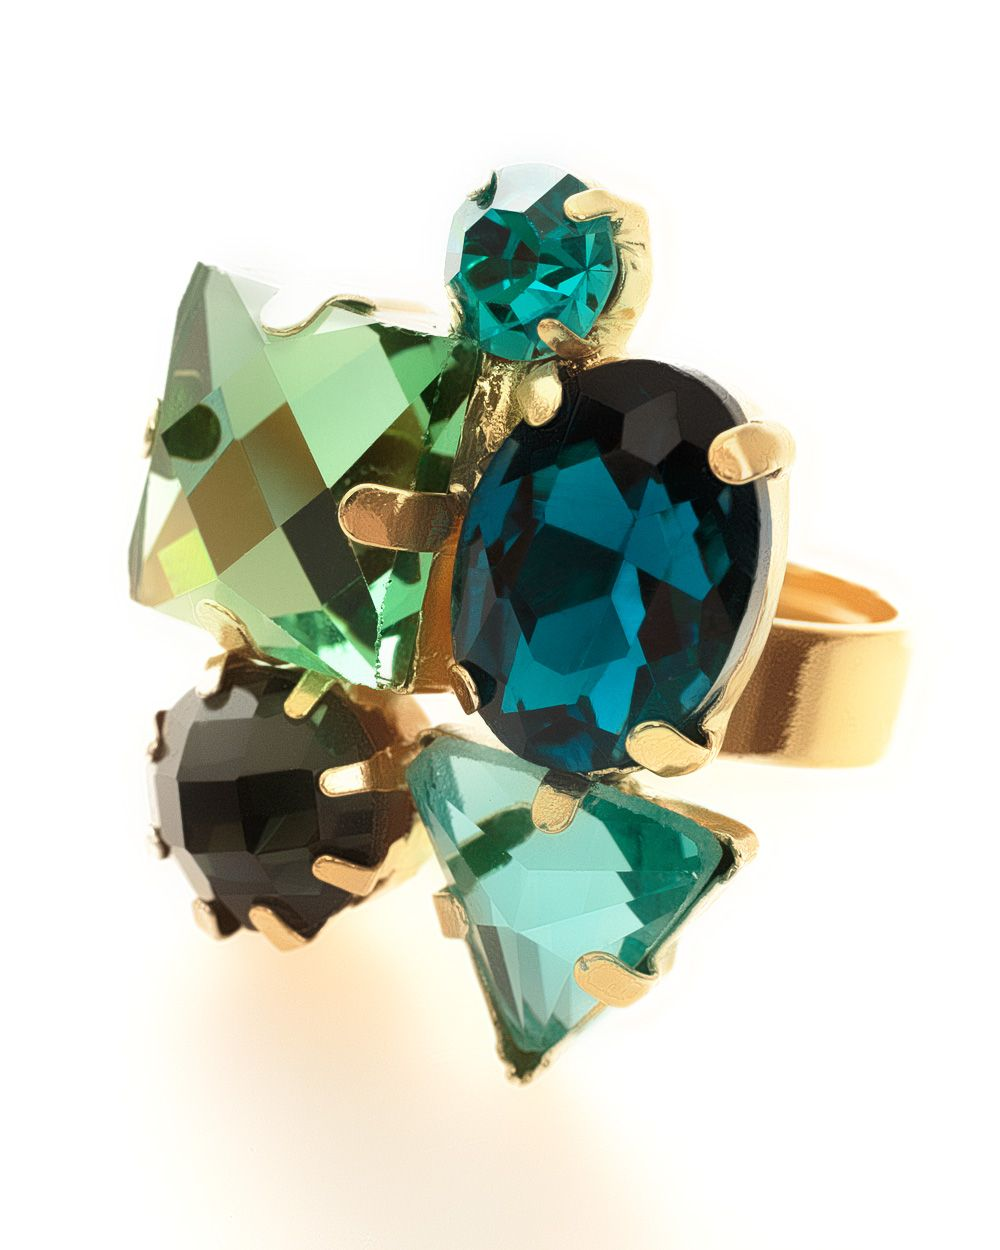 Jewel cluster ring